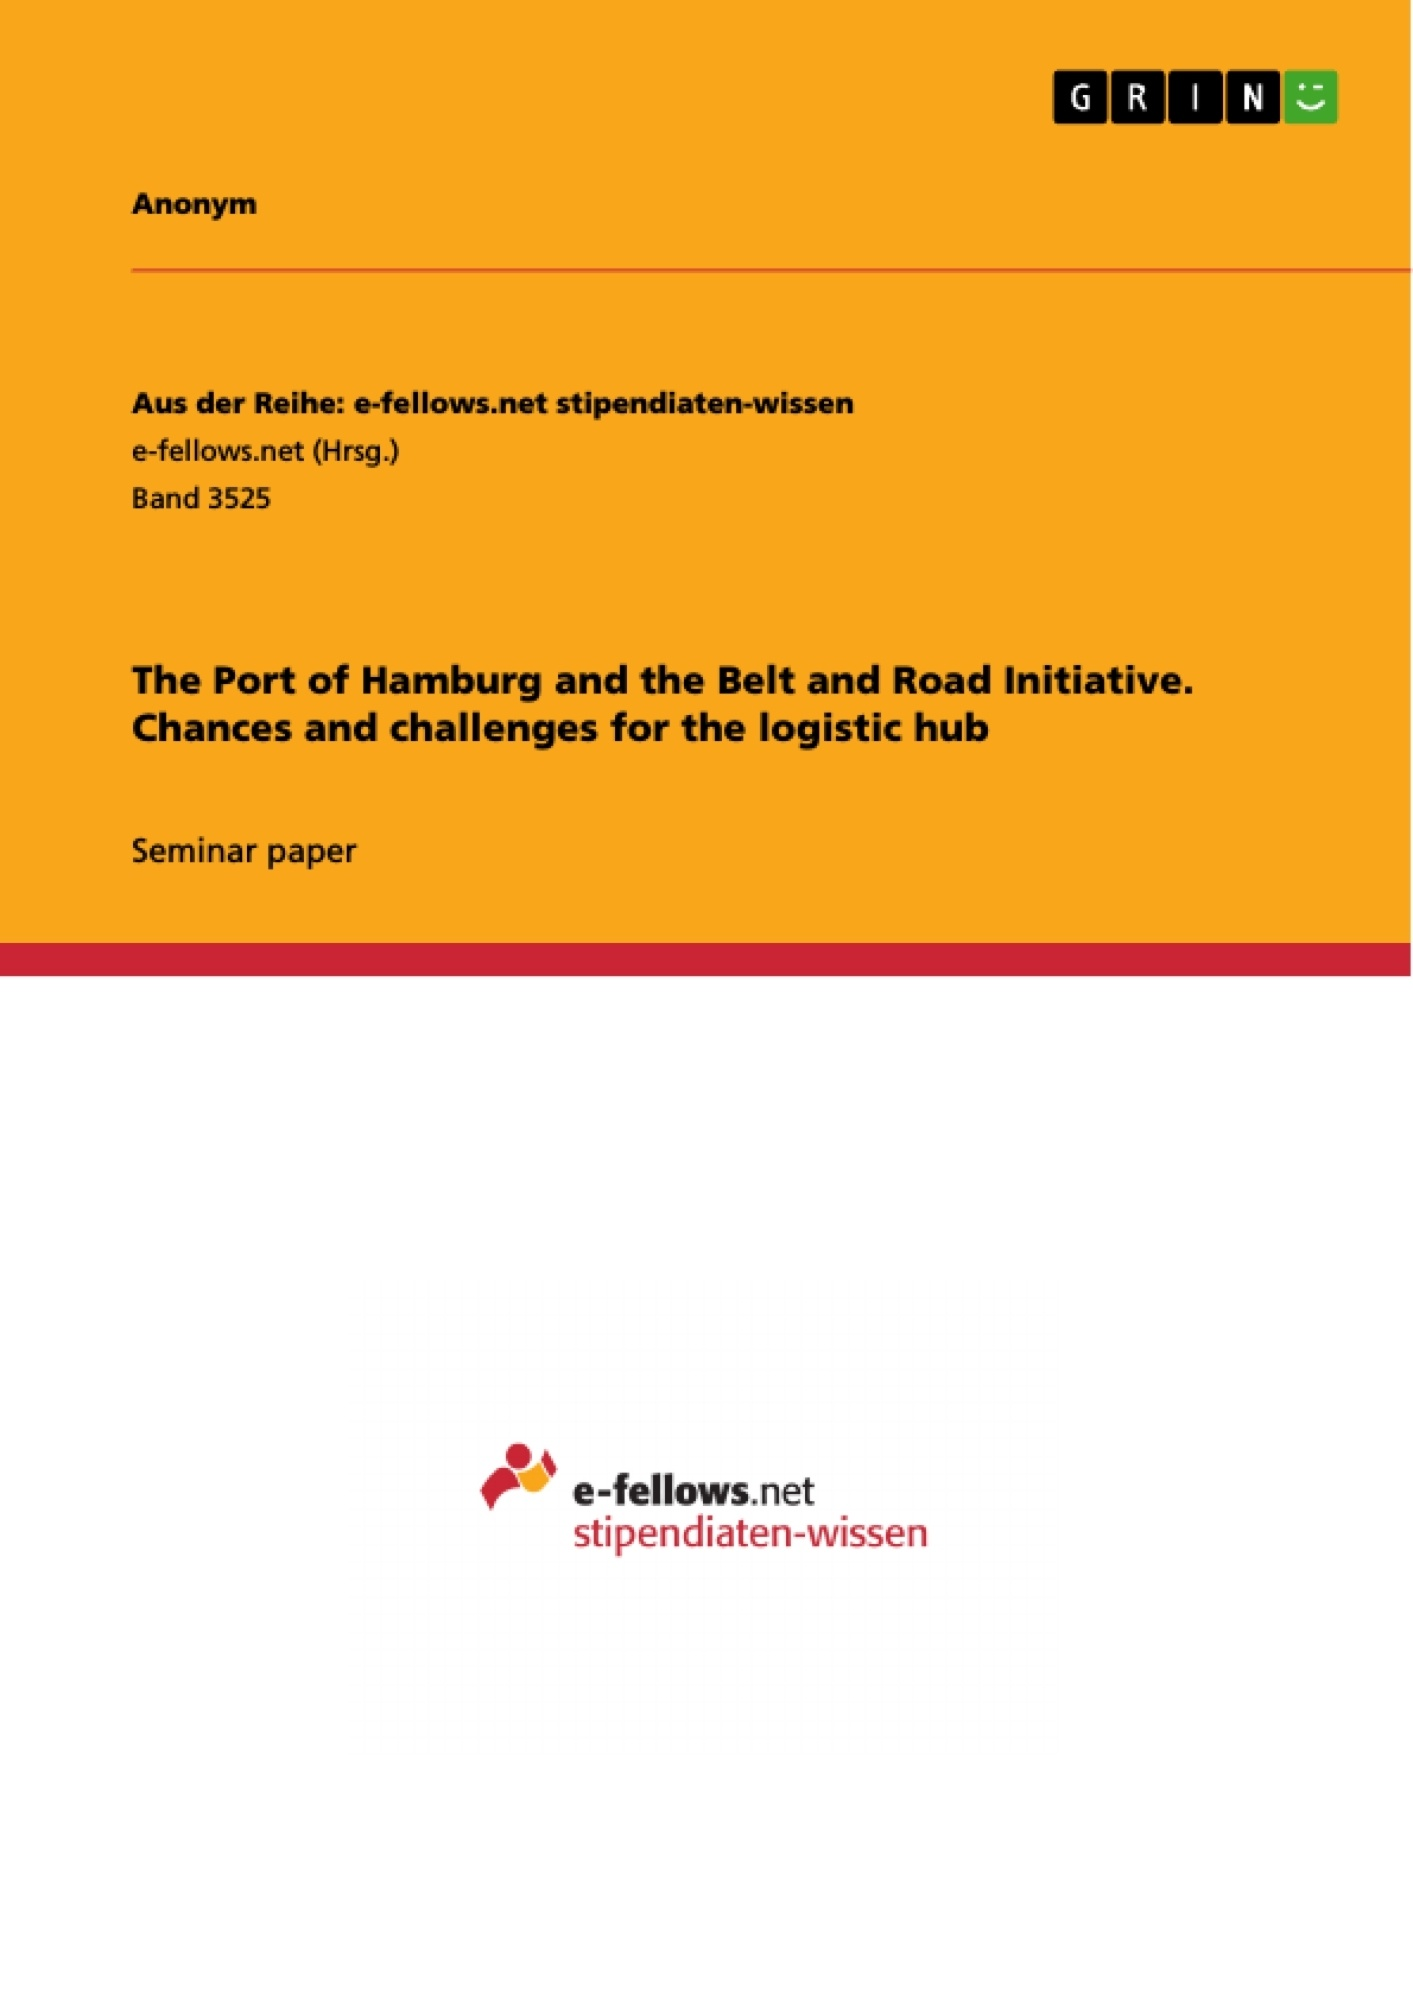 Title: The Port of Hamburg and the Belt and Road Initiative. Chances and challenges for the logistic hub